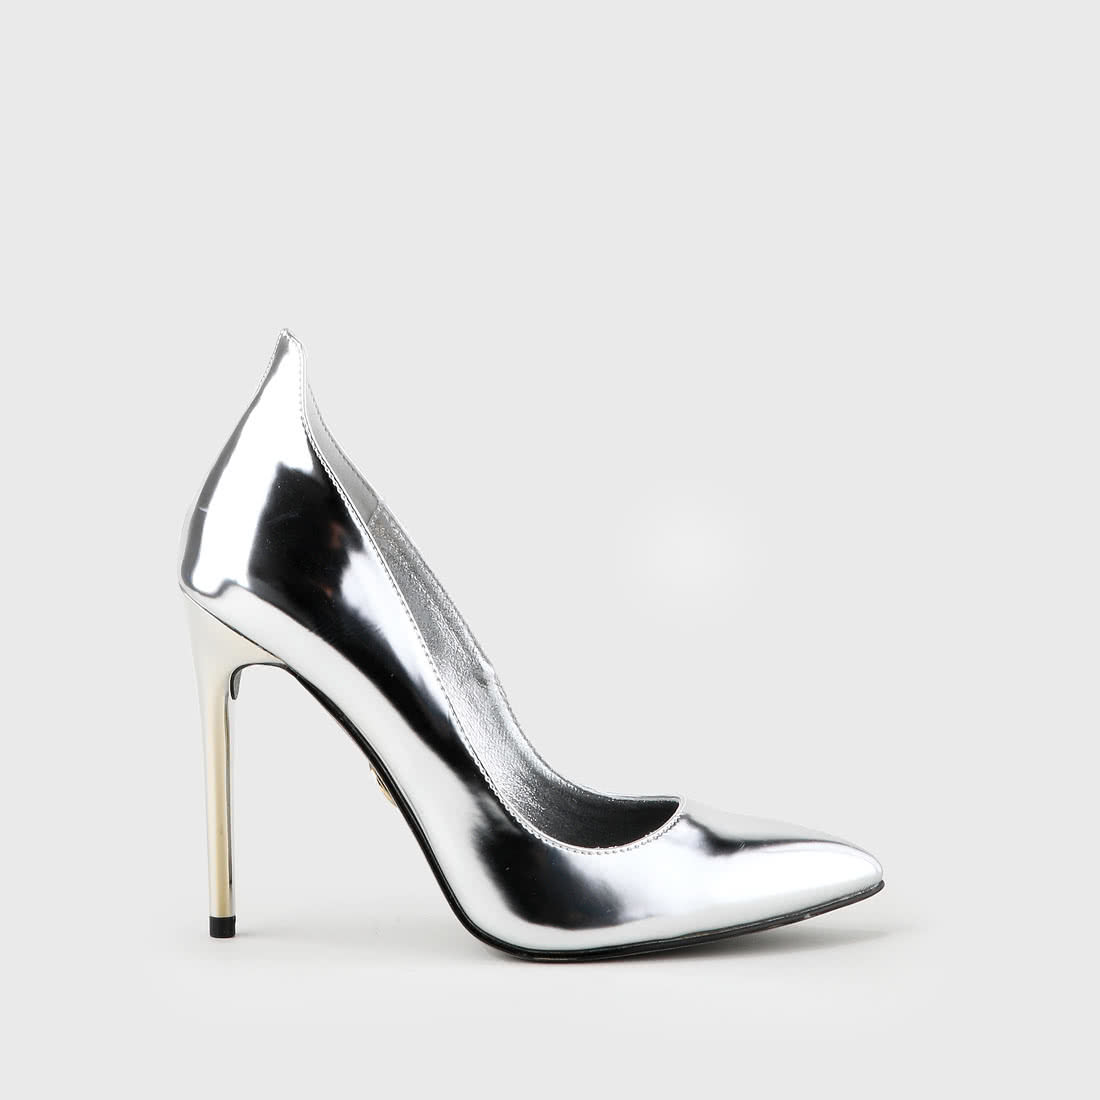 e6c2be40b26 Ana party pumps patent leather look silver buy online in BUFFALO ...